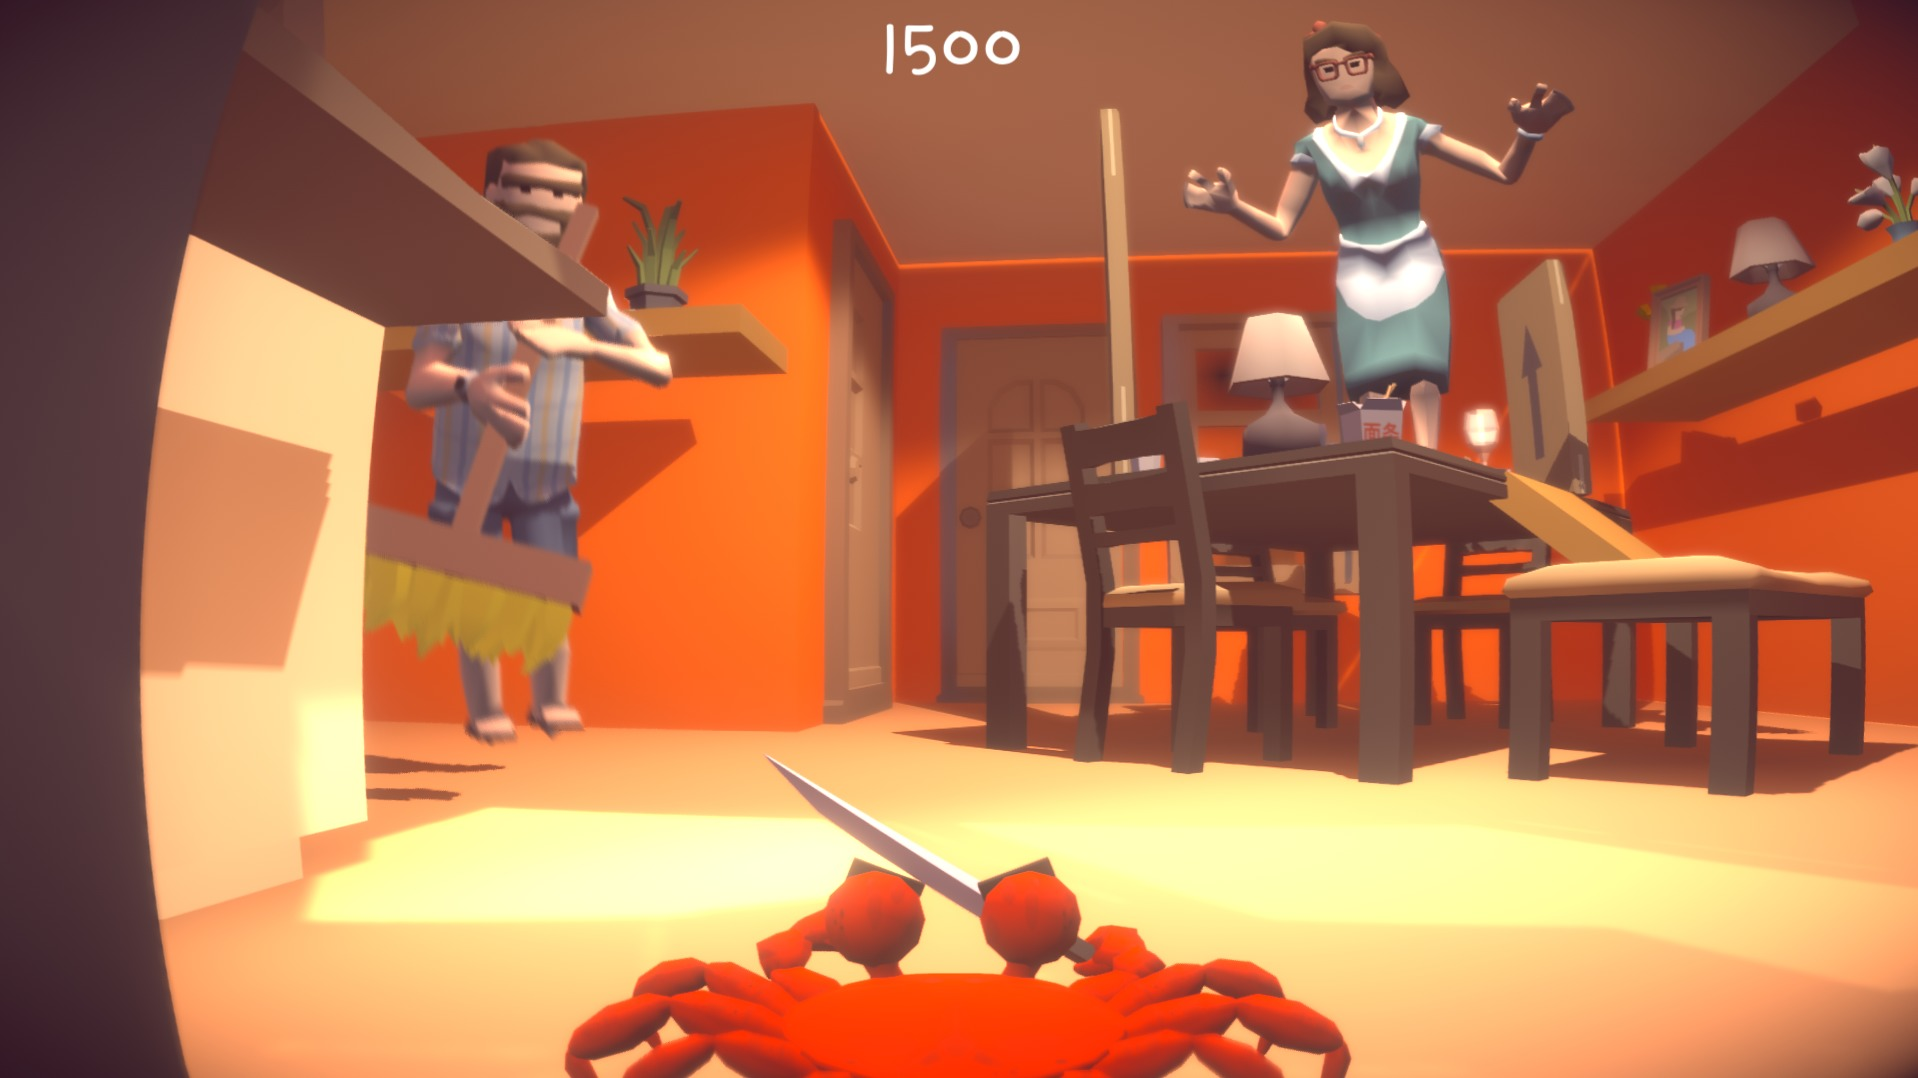 Knife 2 Meat U Is A Comedy Game For Those Who Want To Take A Break – It's Short, Funny, And It's Free!